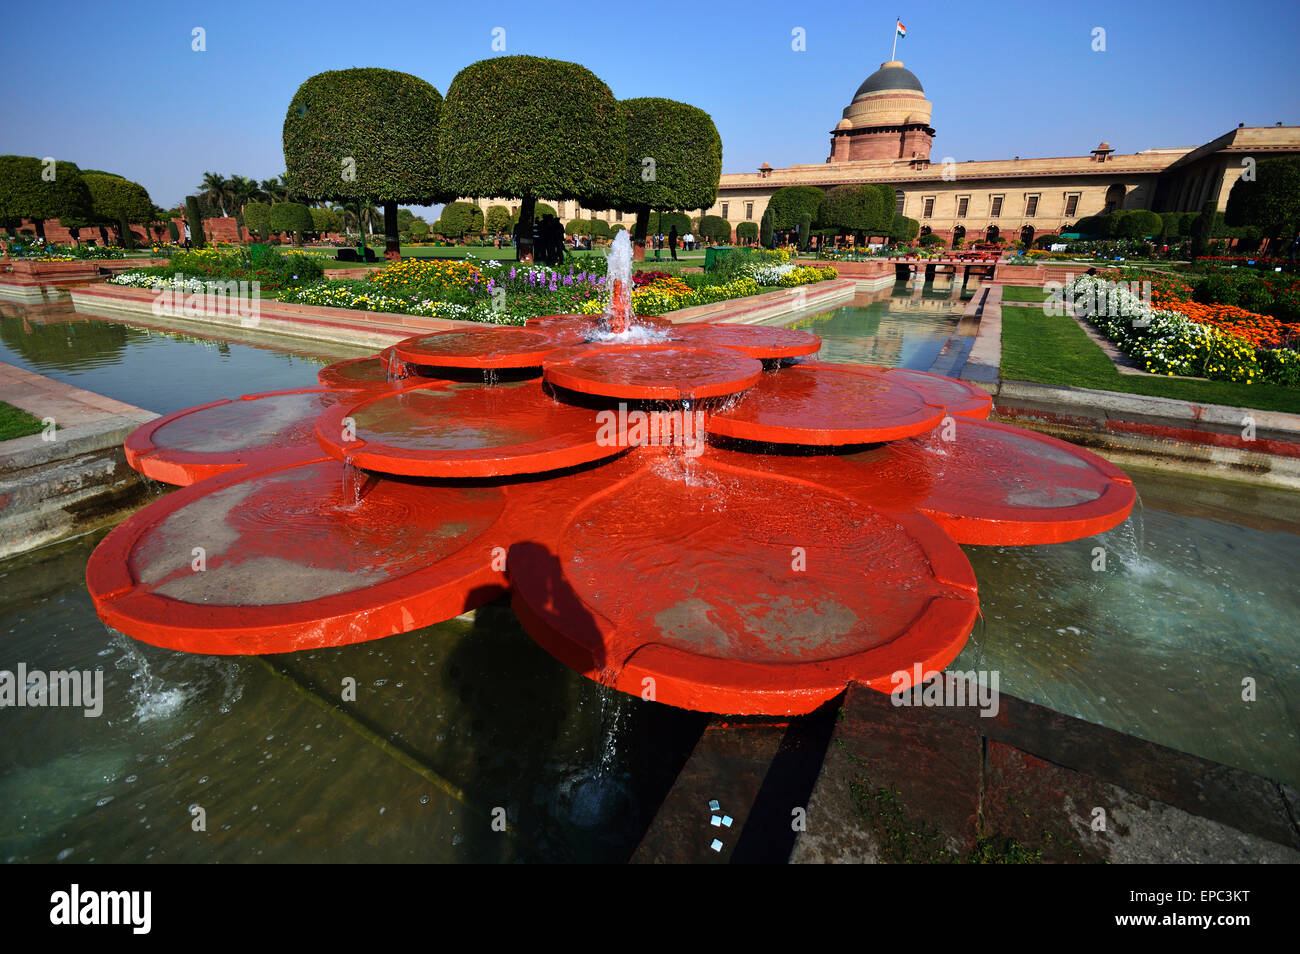 Mughal Gardens with one of the fabulous fountain in the fore ground showing Presidential palace in the background - Stock Image